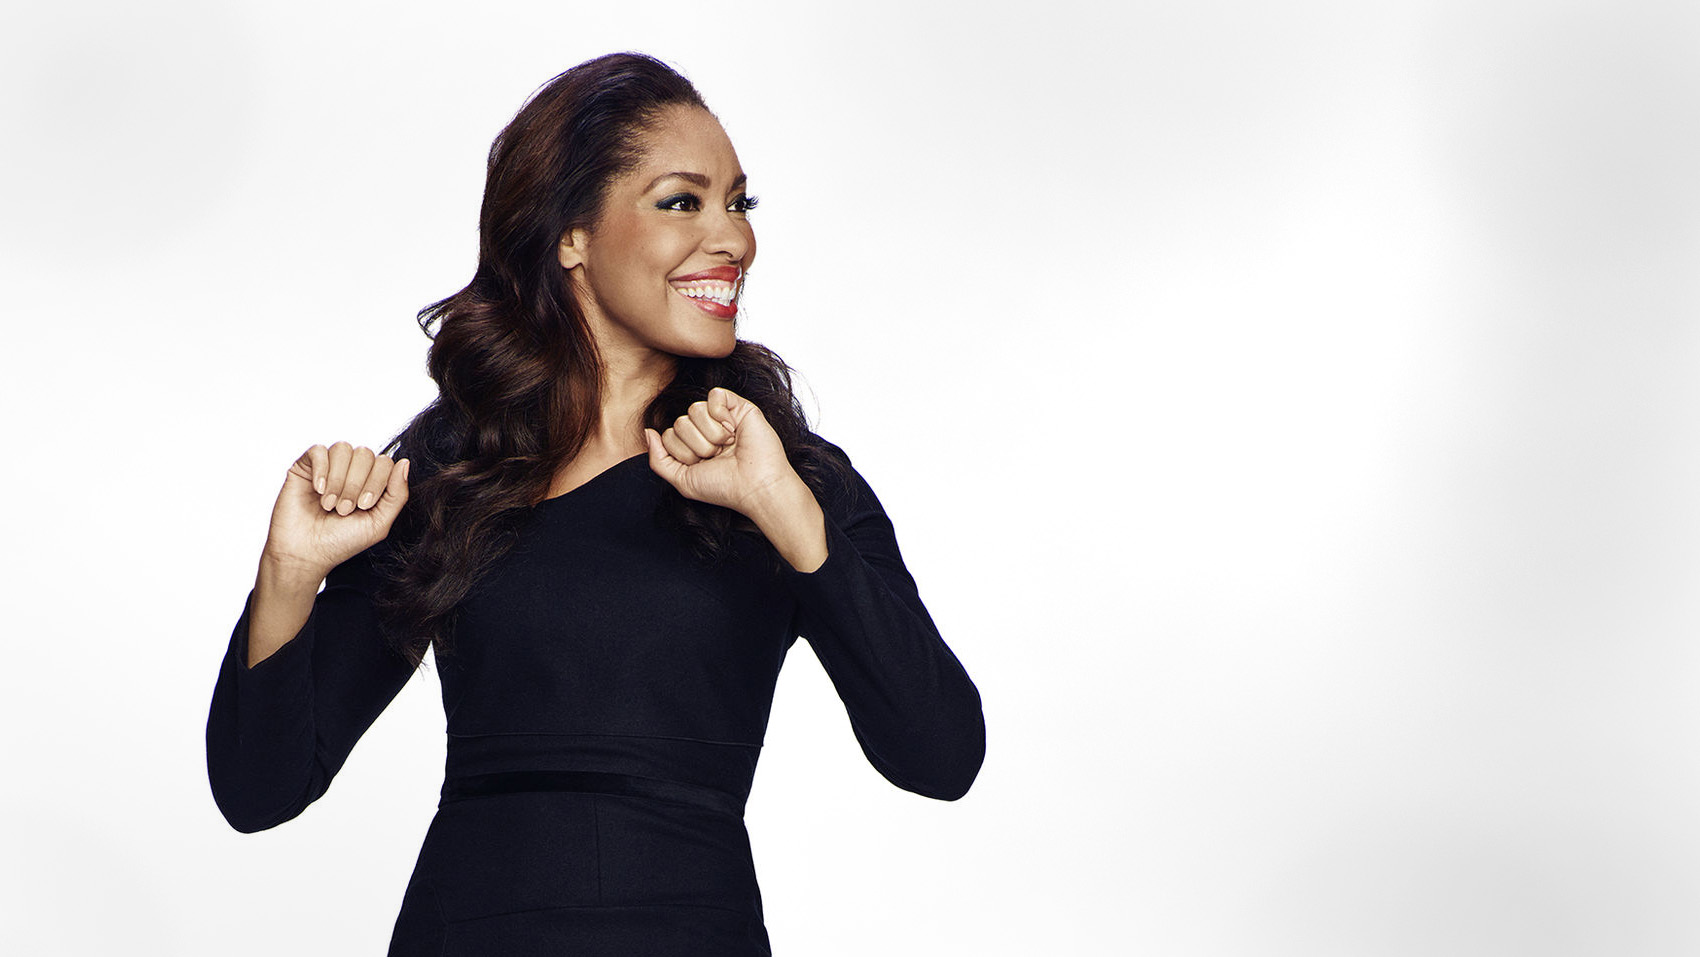 Resume Makeover For Jessica Pearson From Tv Hit Show Quot Suits Quot